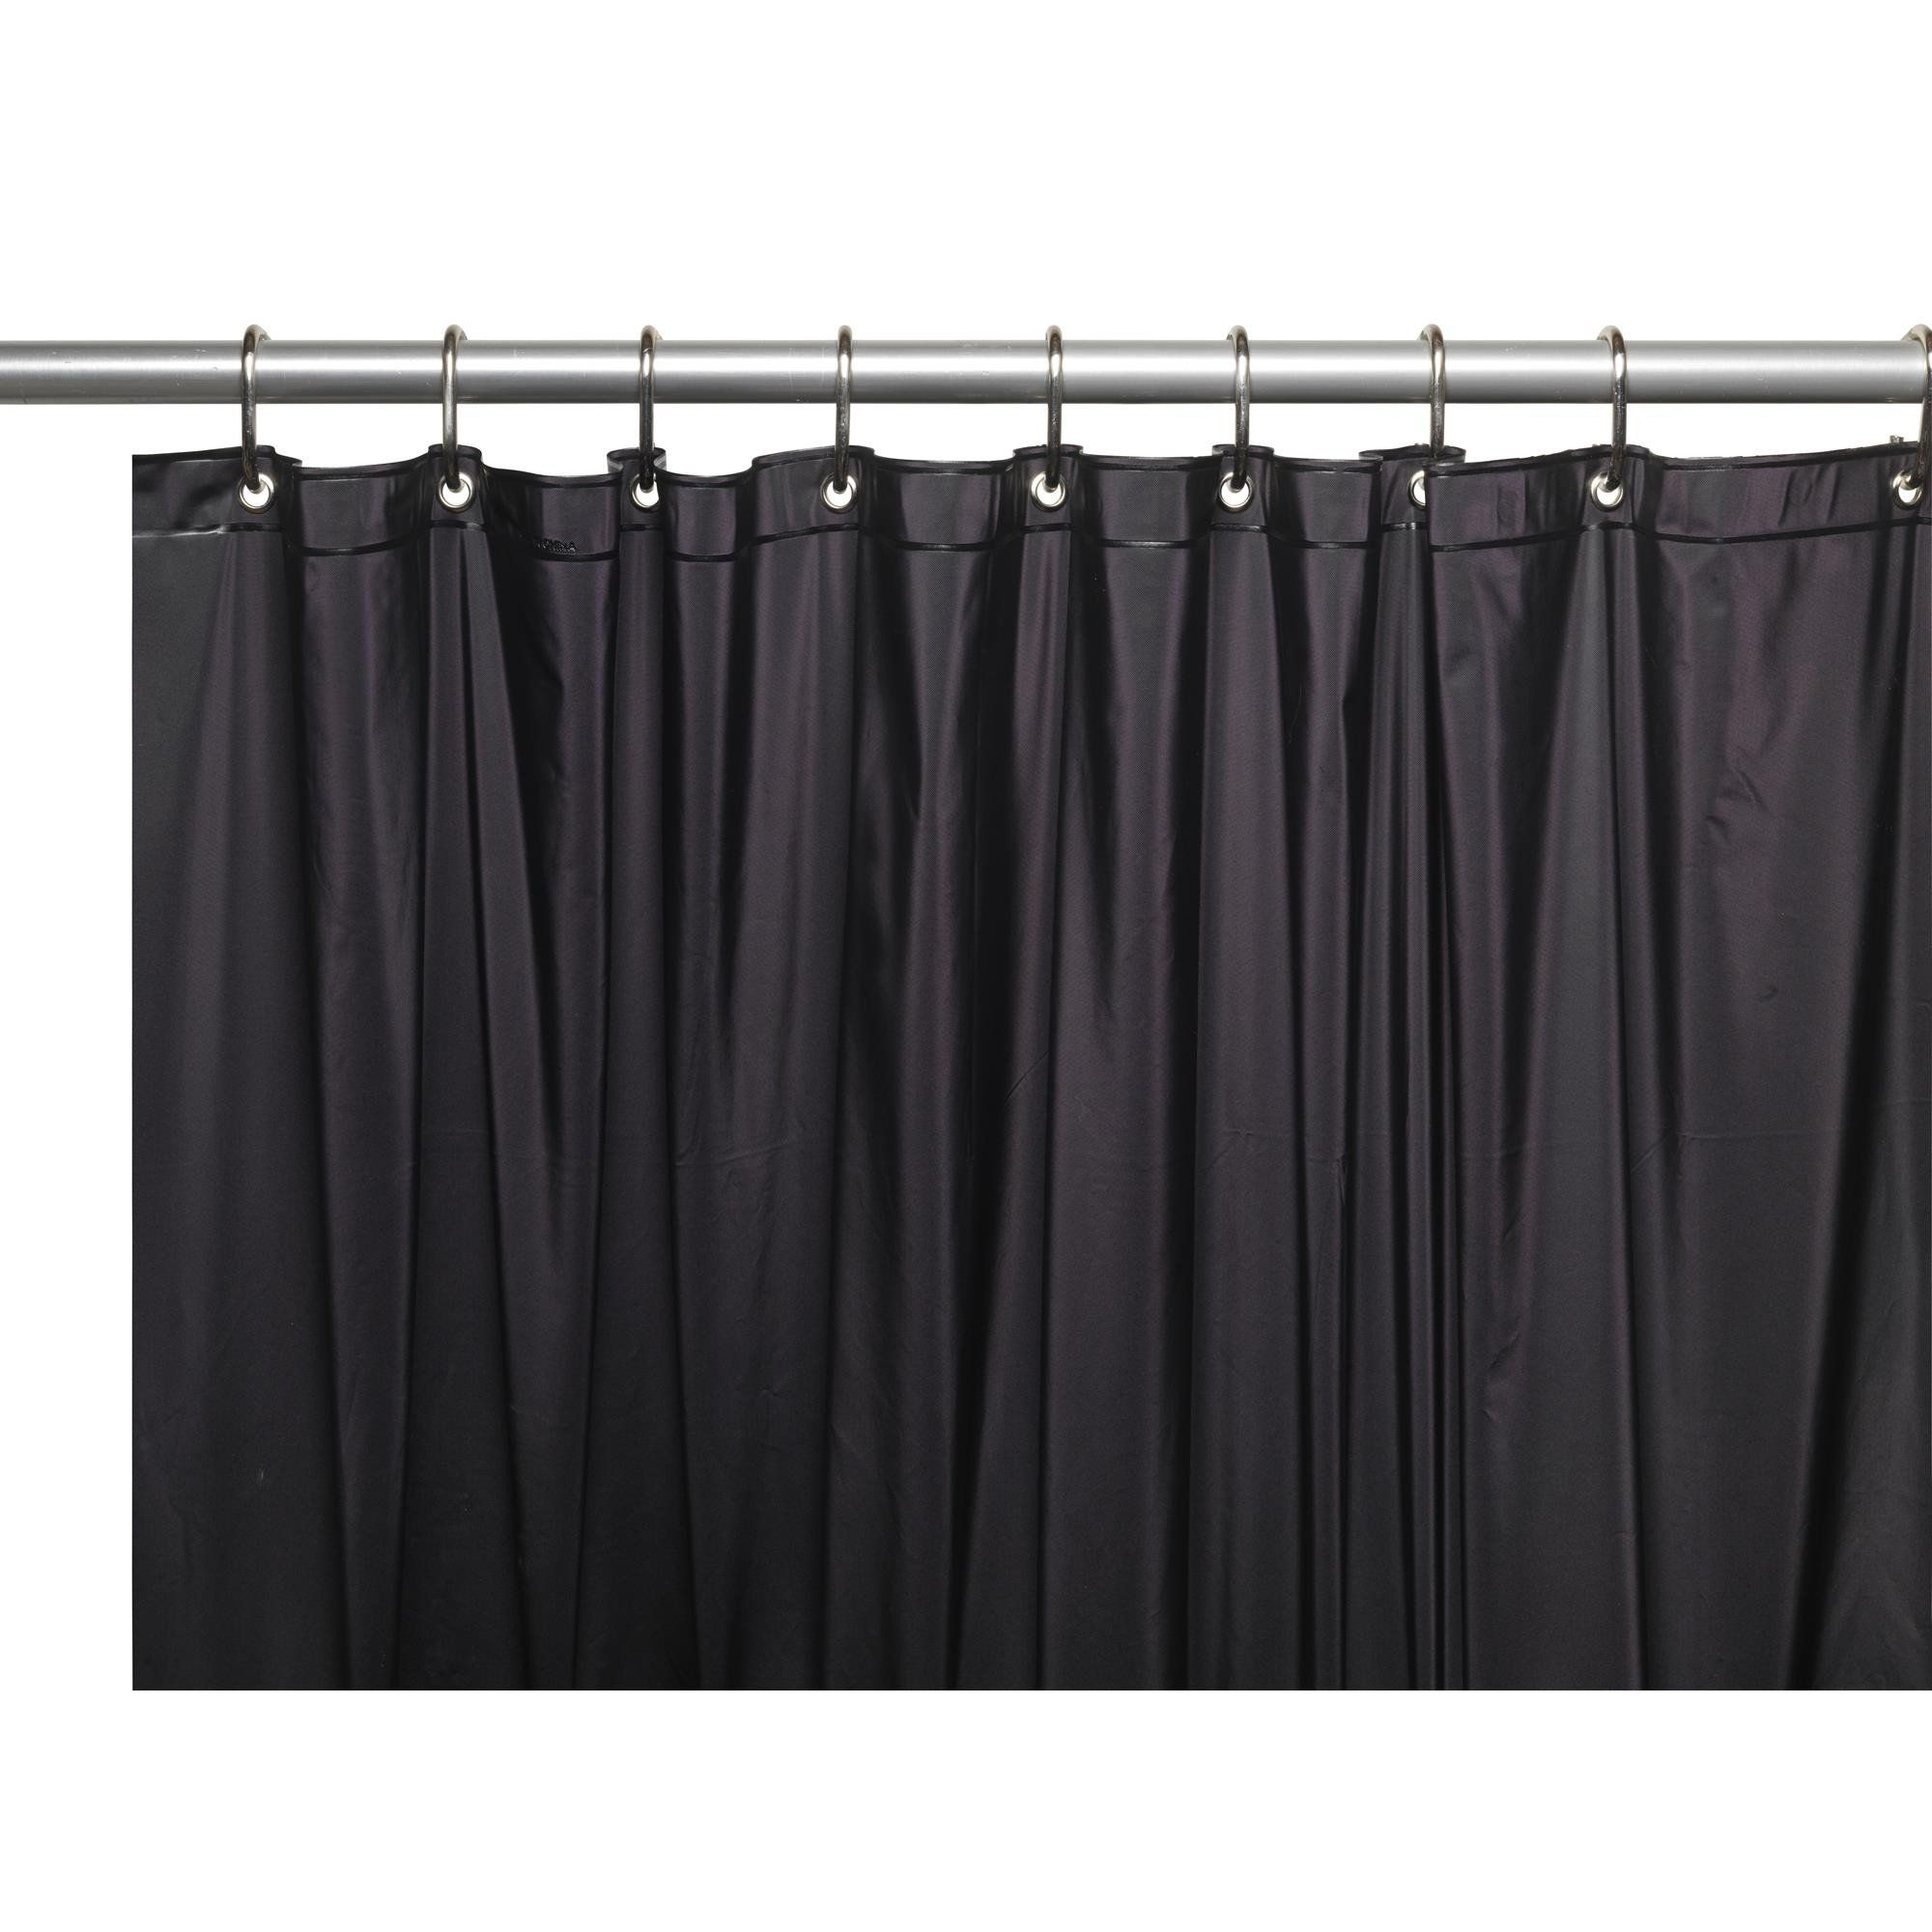 mdesign curtain waterproof shop for heavy b peva liners amazon shower resistant mold bathroom com dvl duty mildew liner